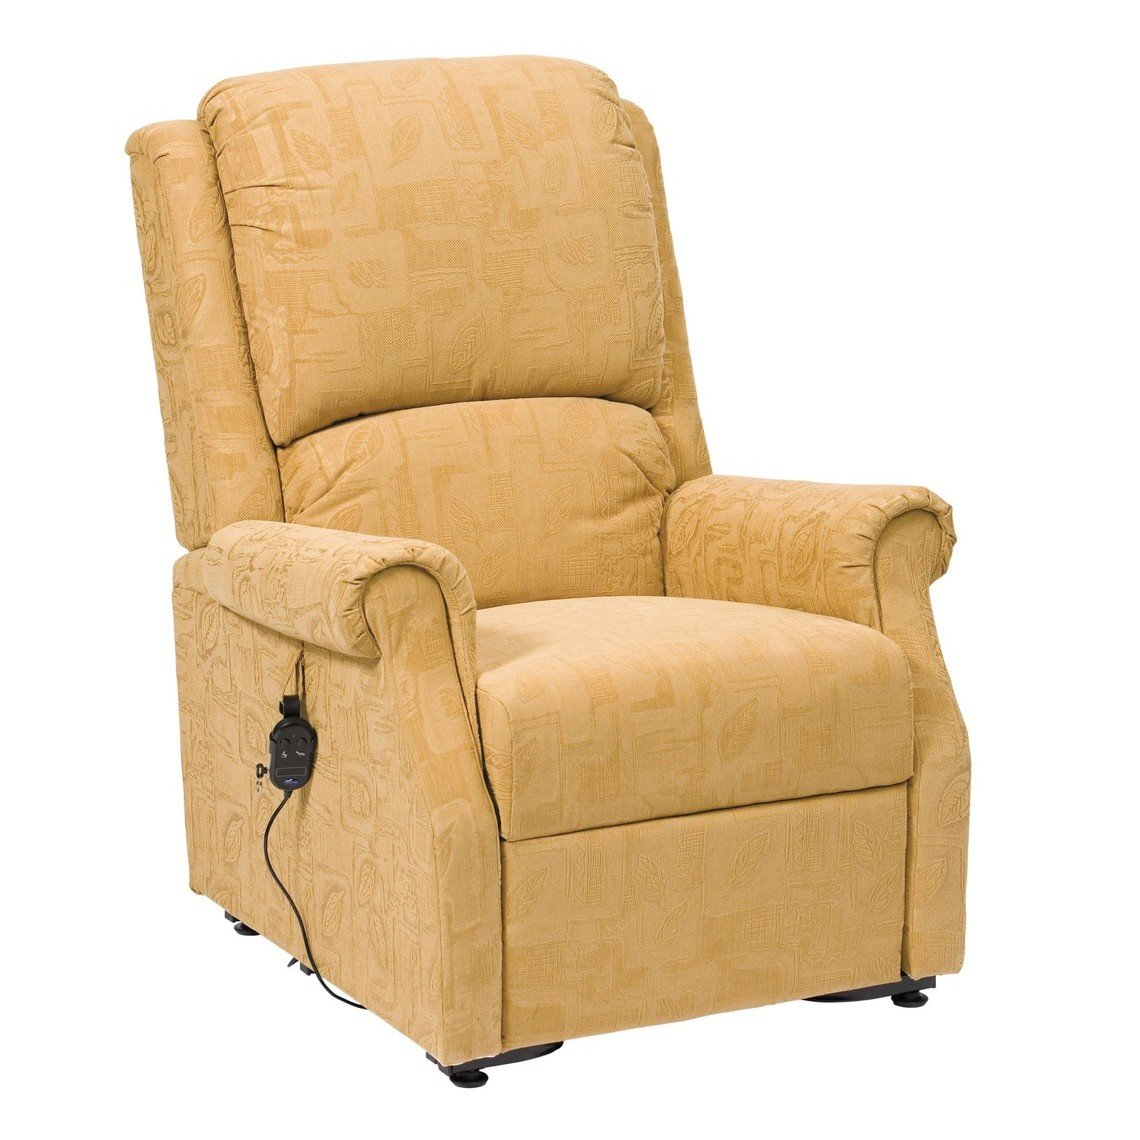 Orthopaedic High Chairs Riser Recliners In Liverpool - Orthopaedic chairs uk